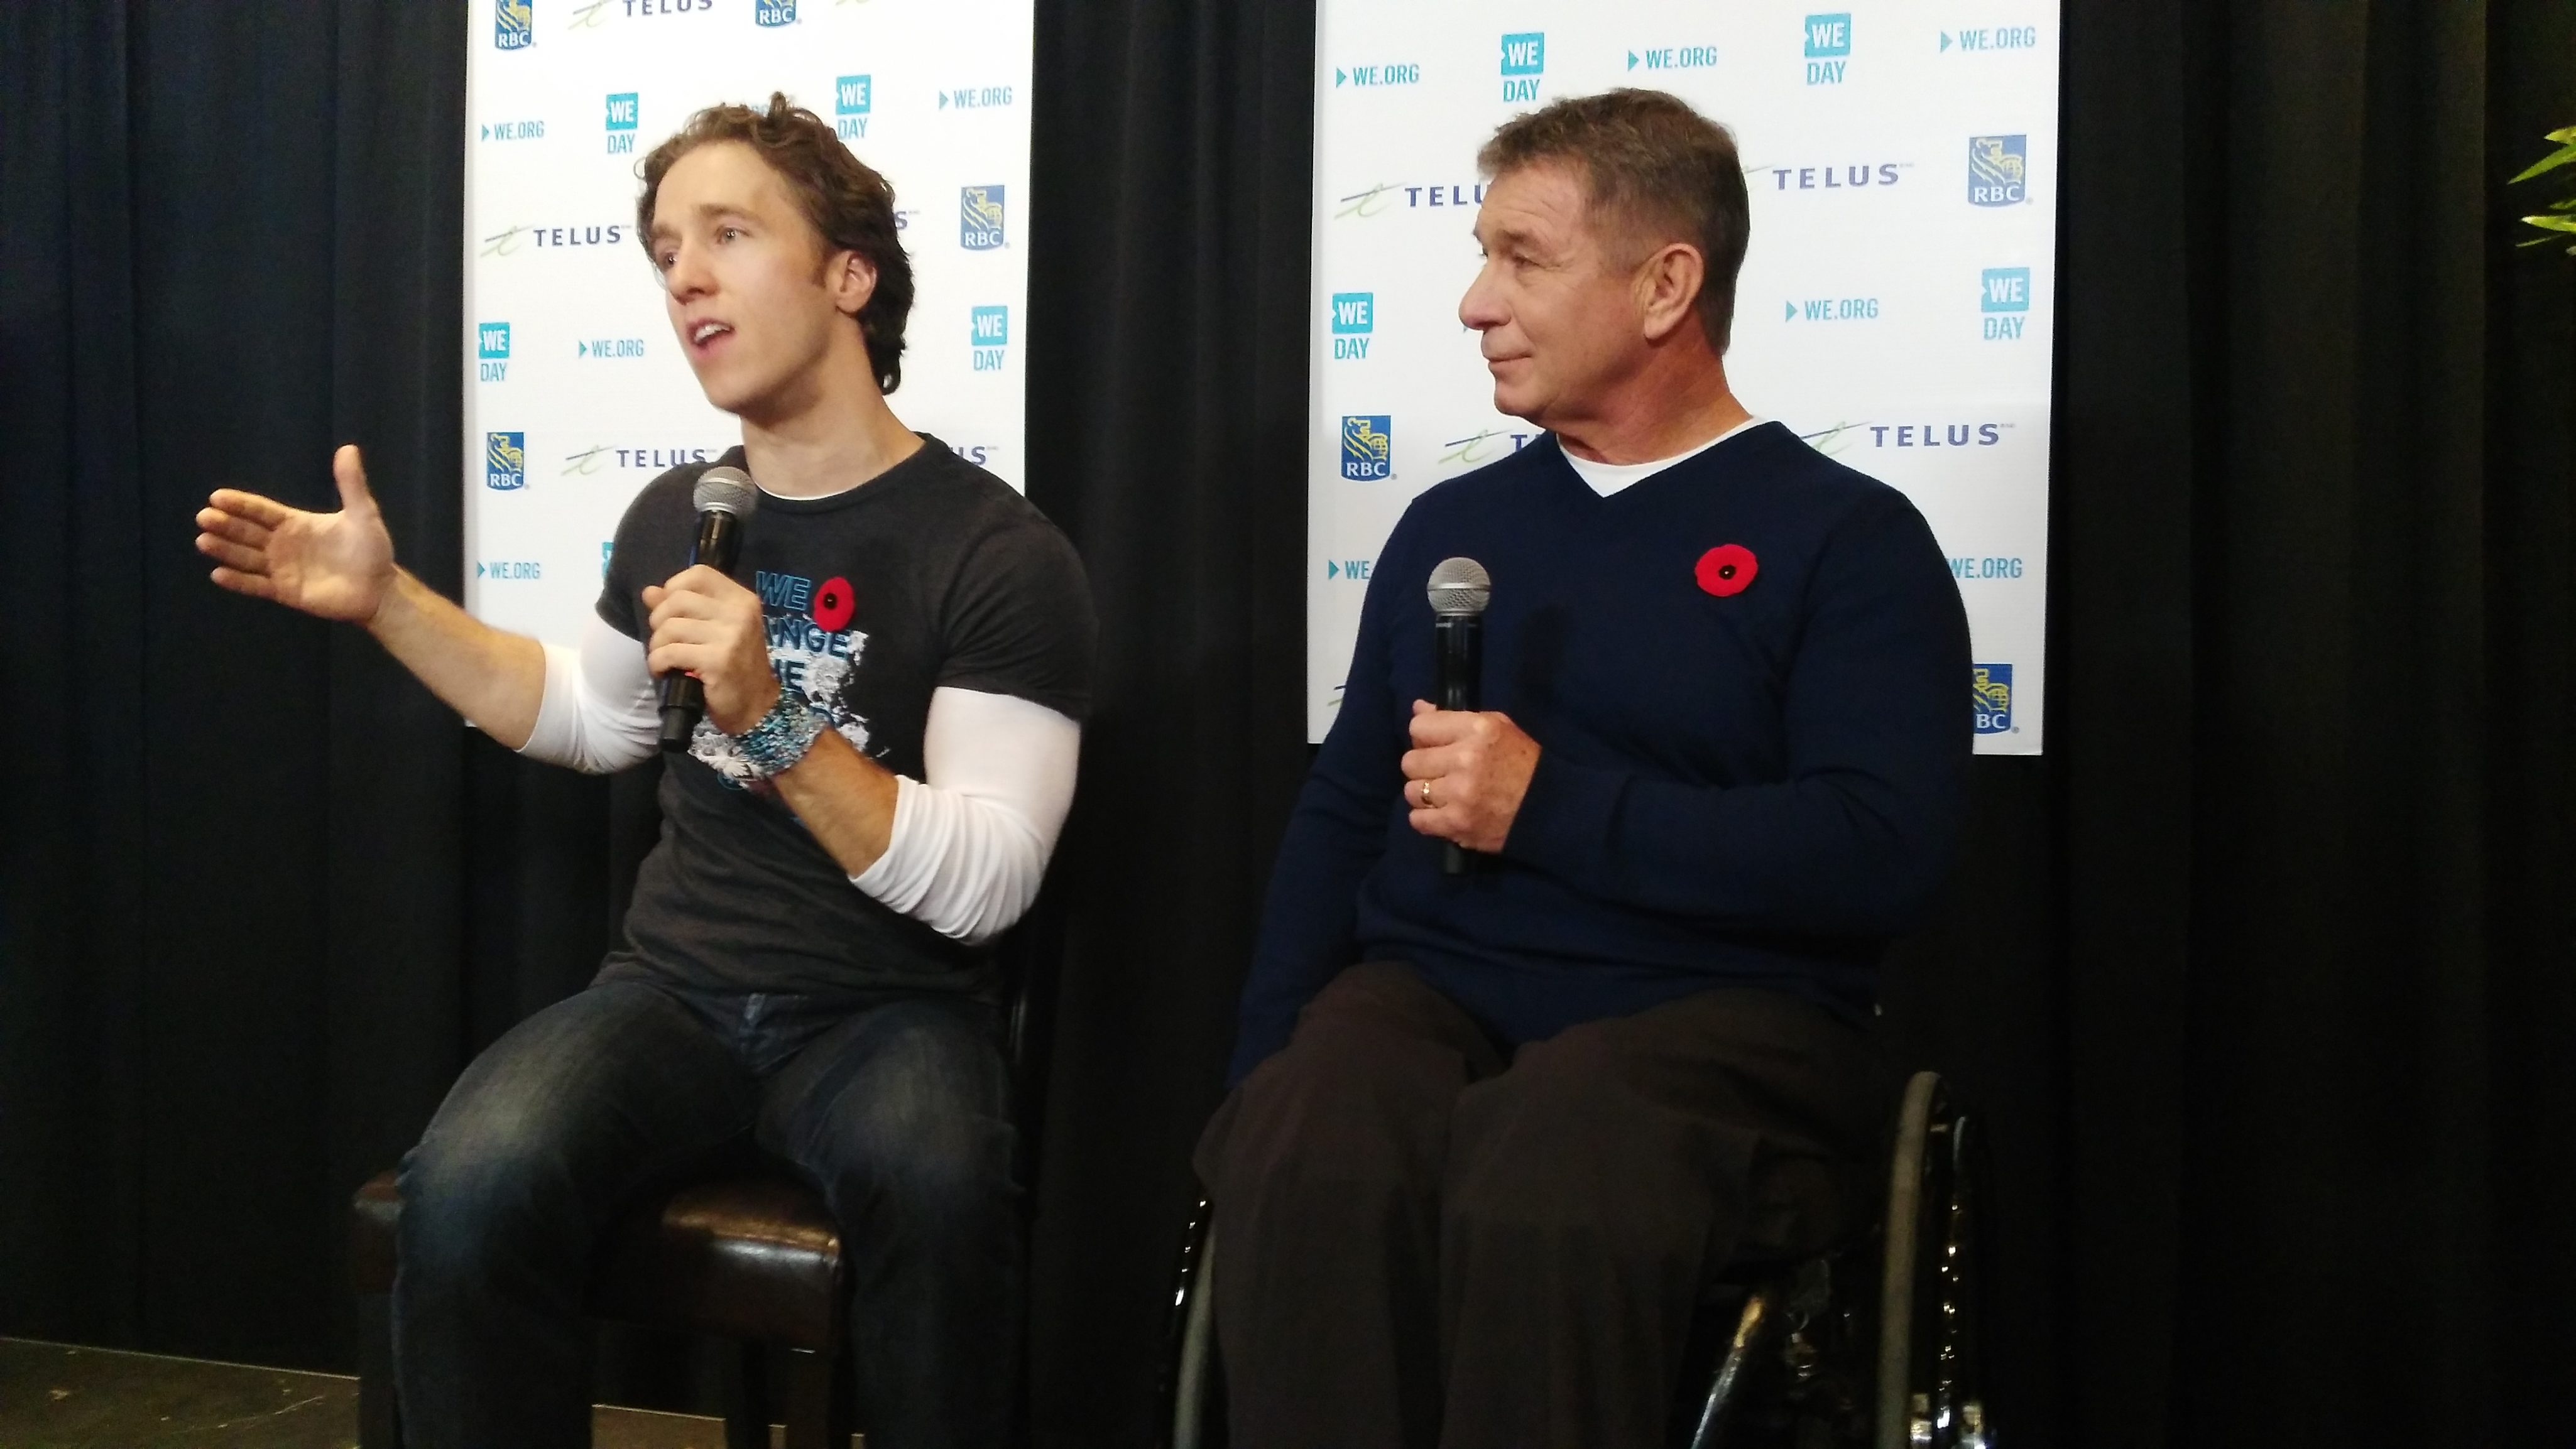 WE Day co-founder Craig Kielburger and Canadian Paralympian, activist and philanthropist Rick Hansen address members of the media at the Canadian Tire Centre. Photo by Nicolina Leone, Ottawa Magazine.